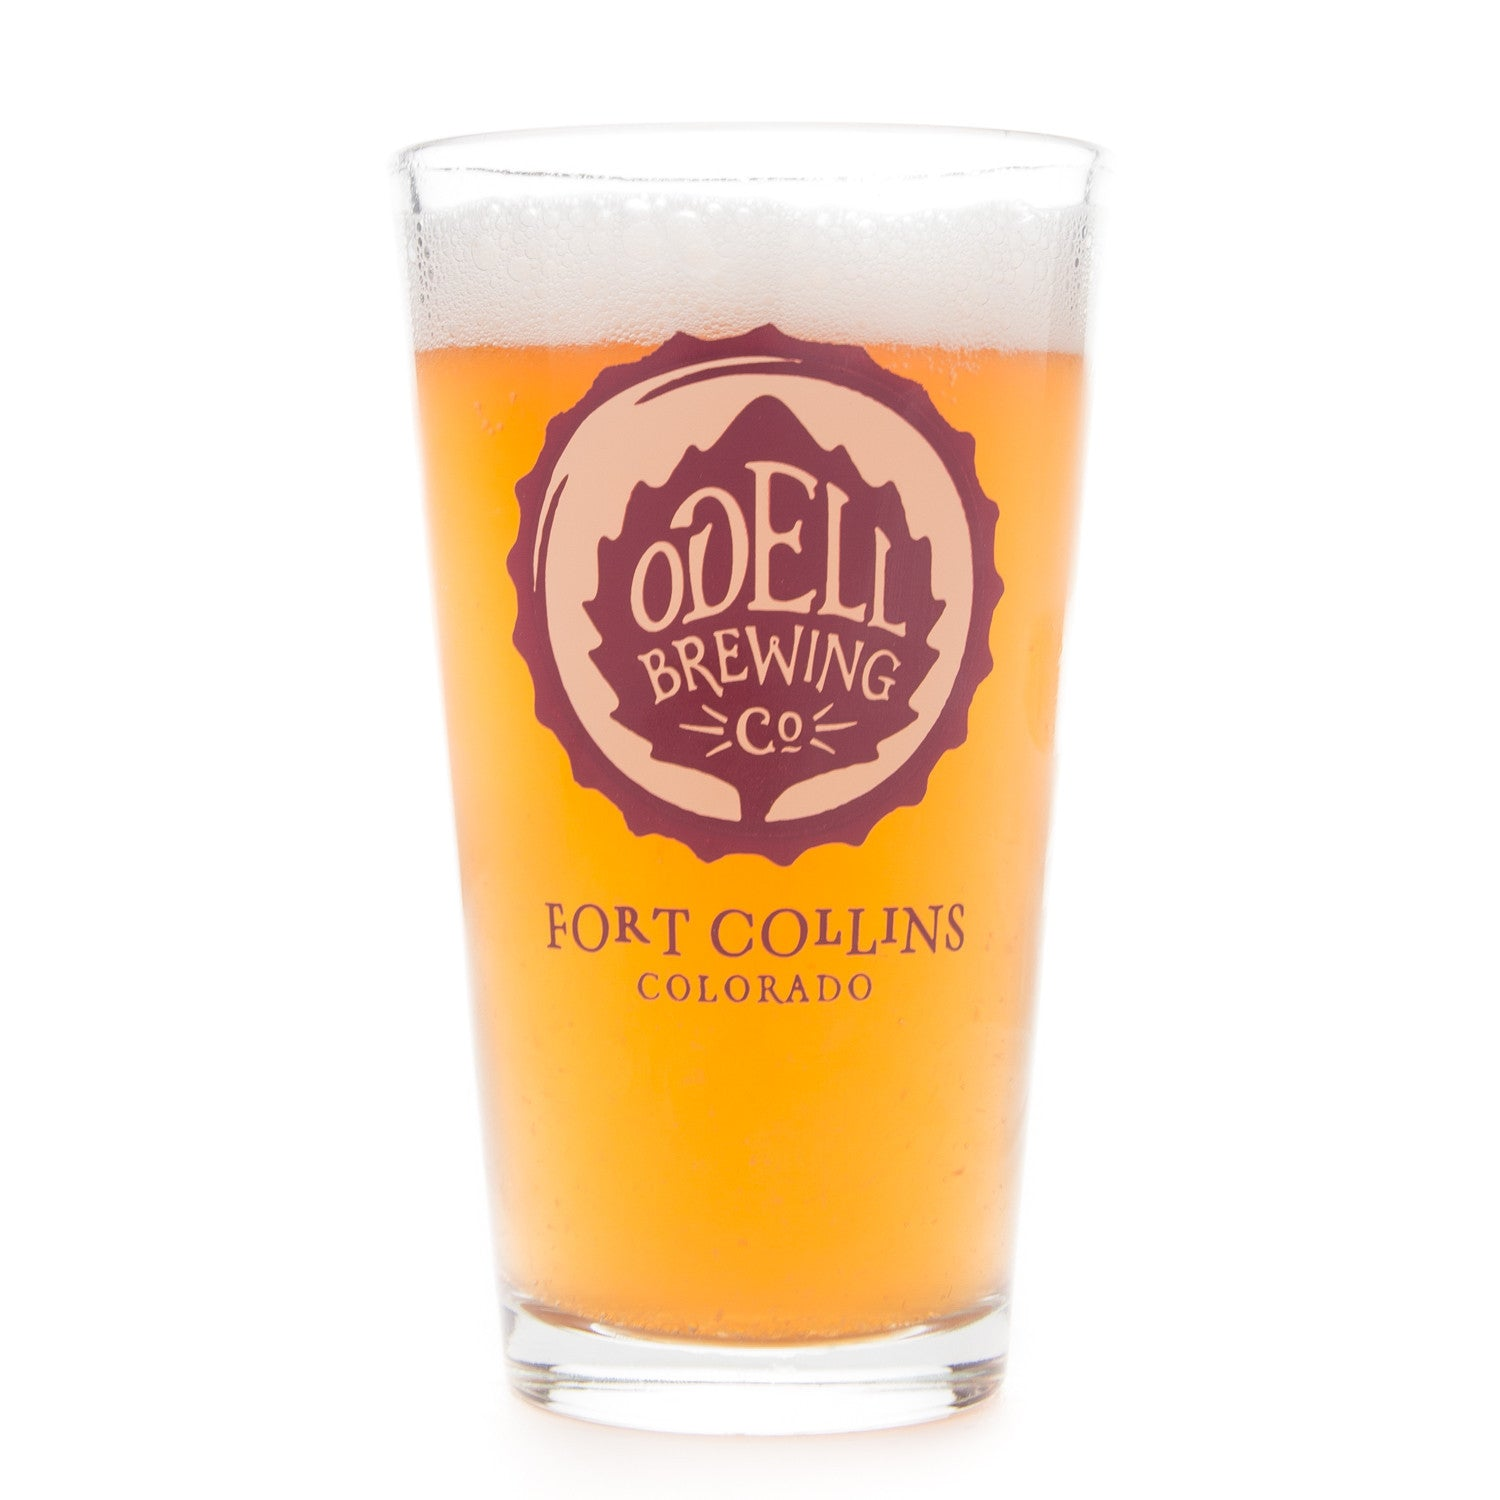 Odell brewing logo pint glass c139a142 22f4 43a1 9d06 a5938c92190c.jpg?v=1469547292